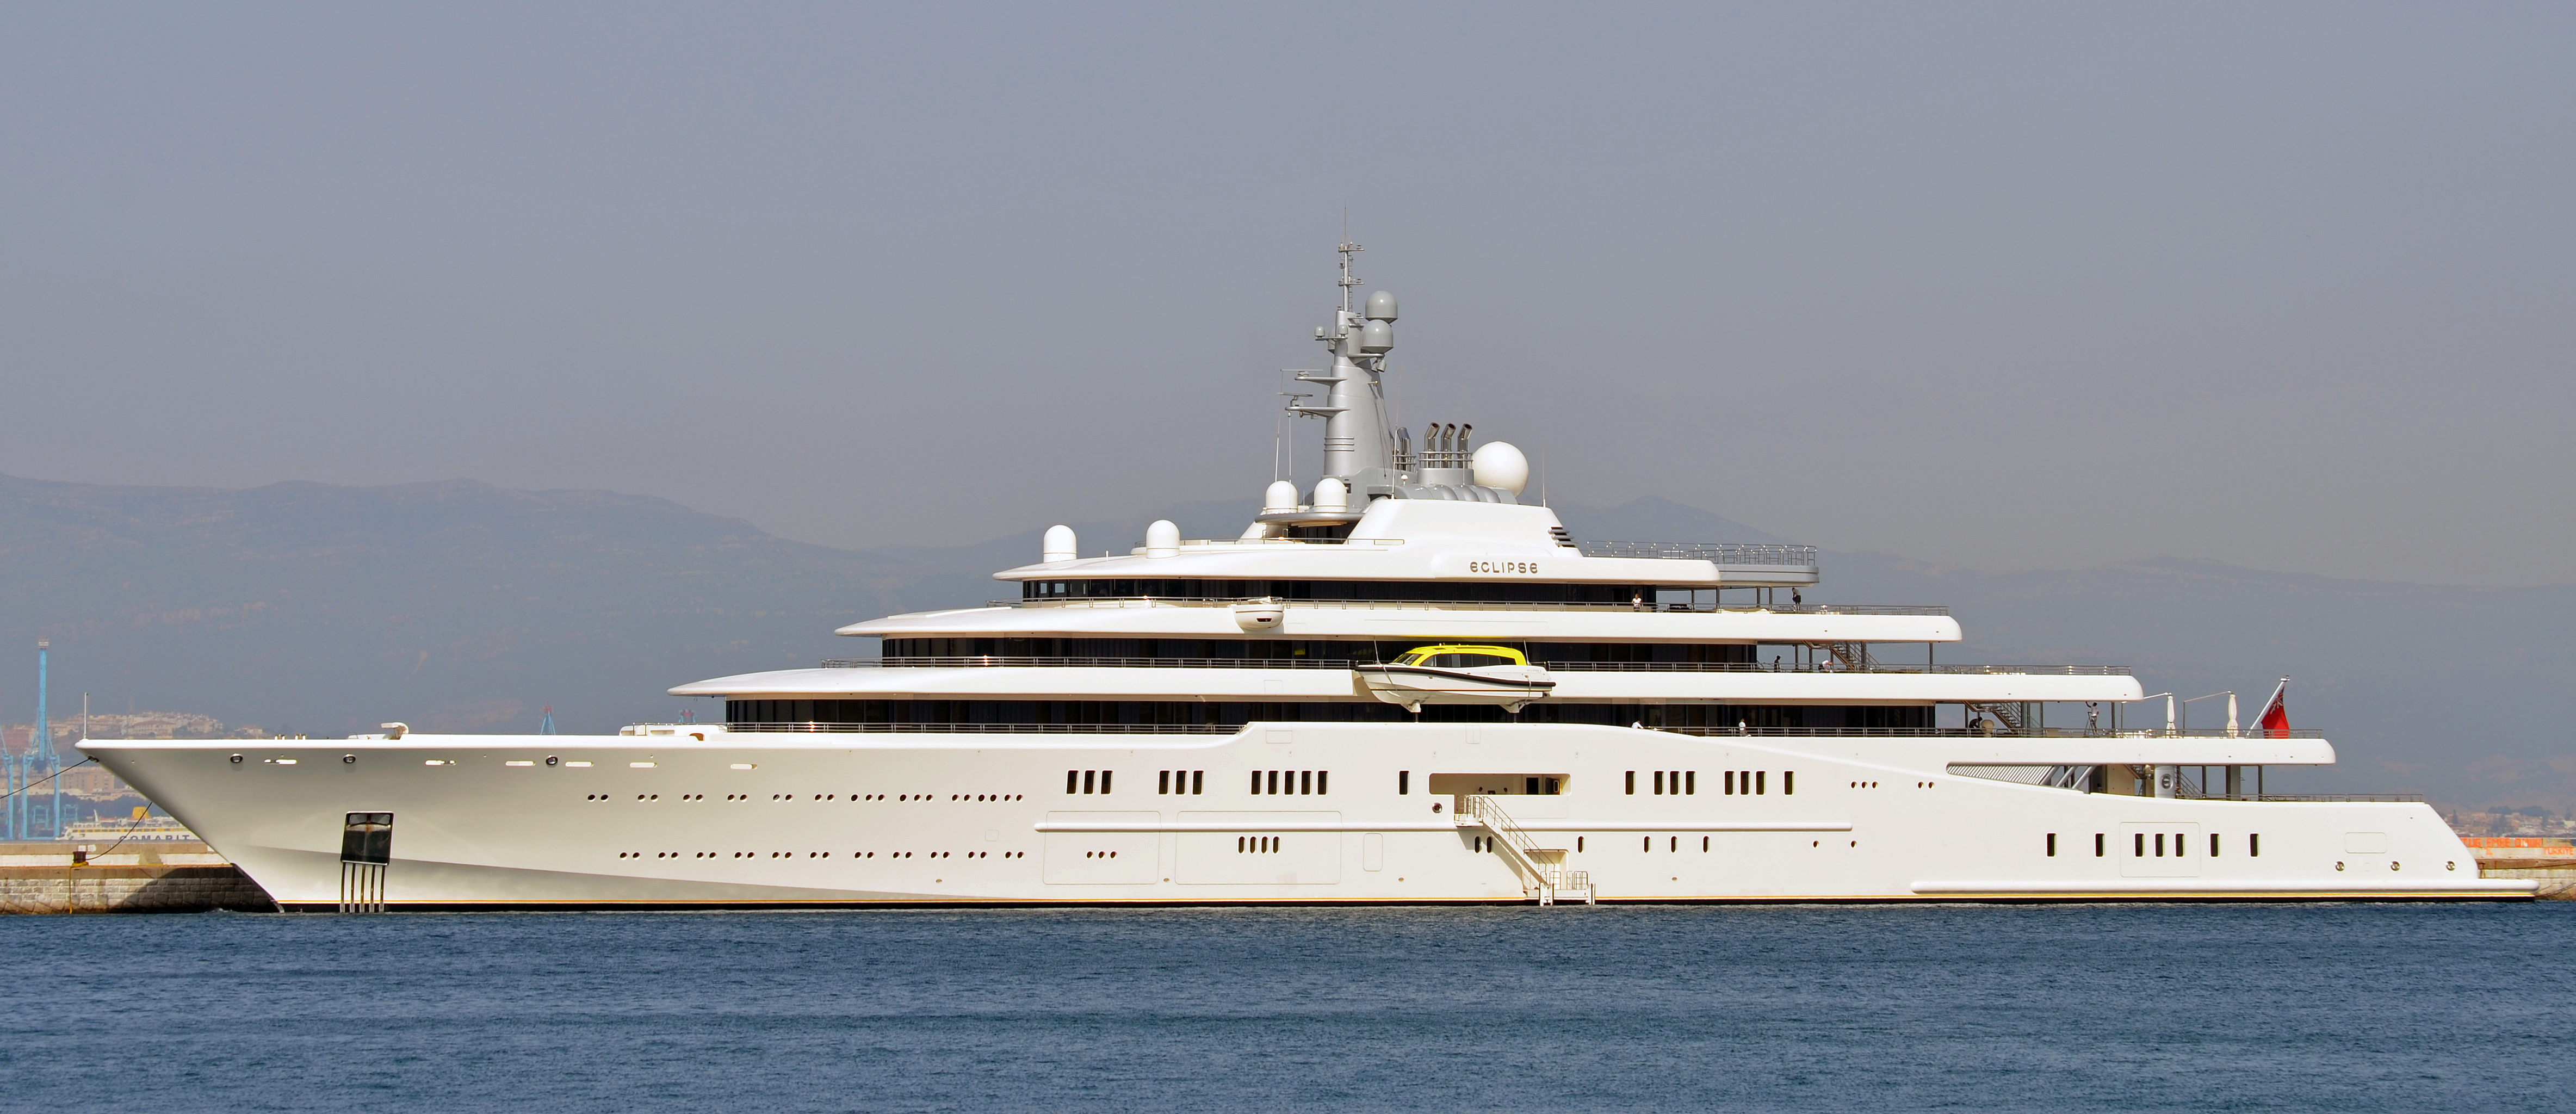 Rene Benko Wikipedia: File:MY Eclipse Superyacht Berthed At The Detached Mole